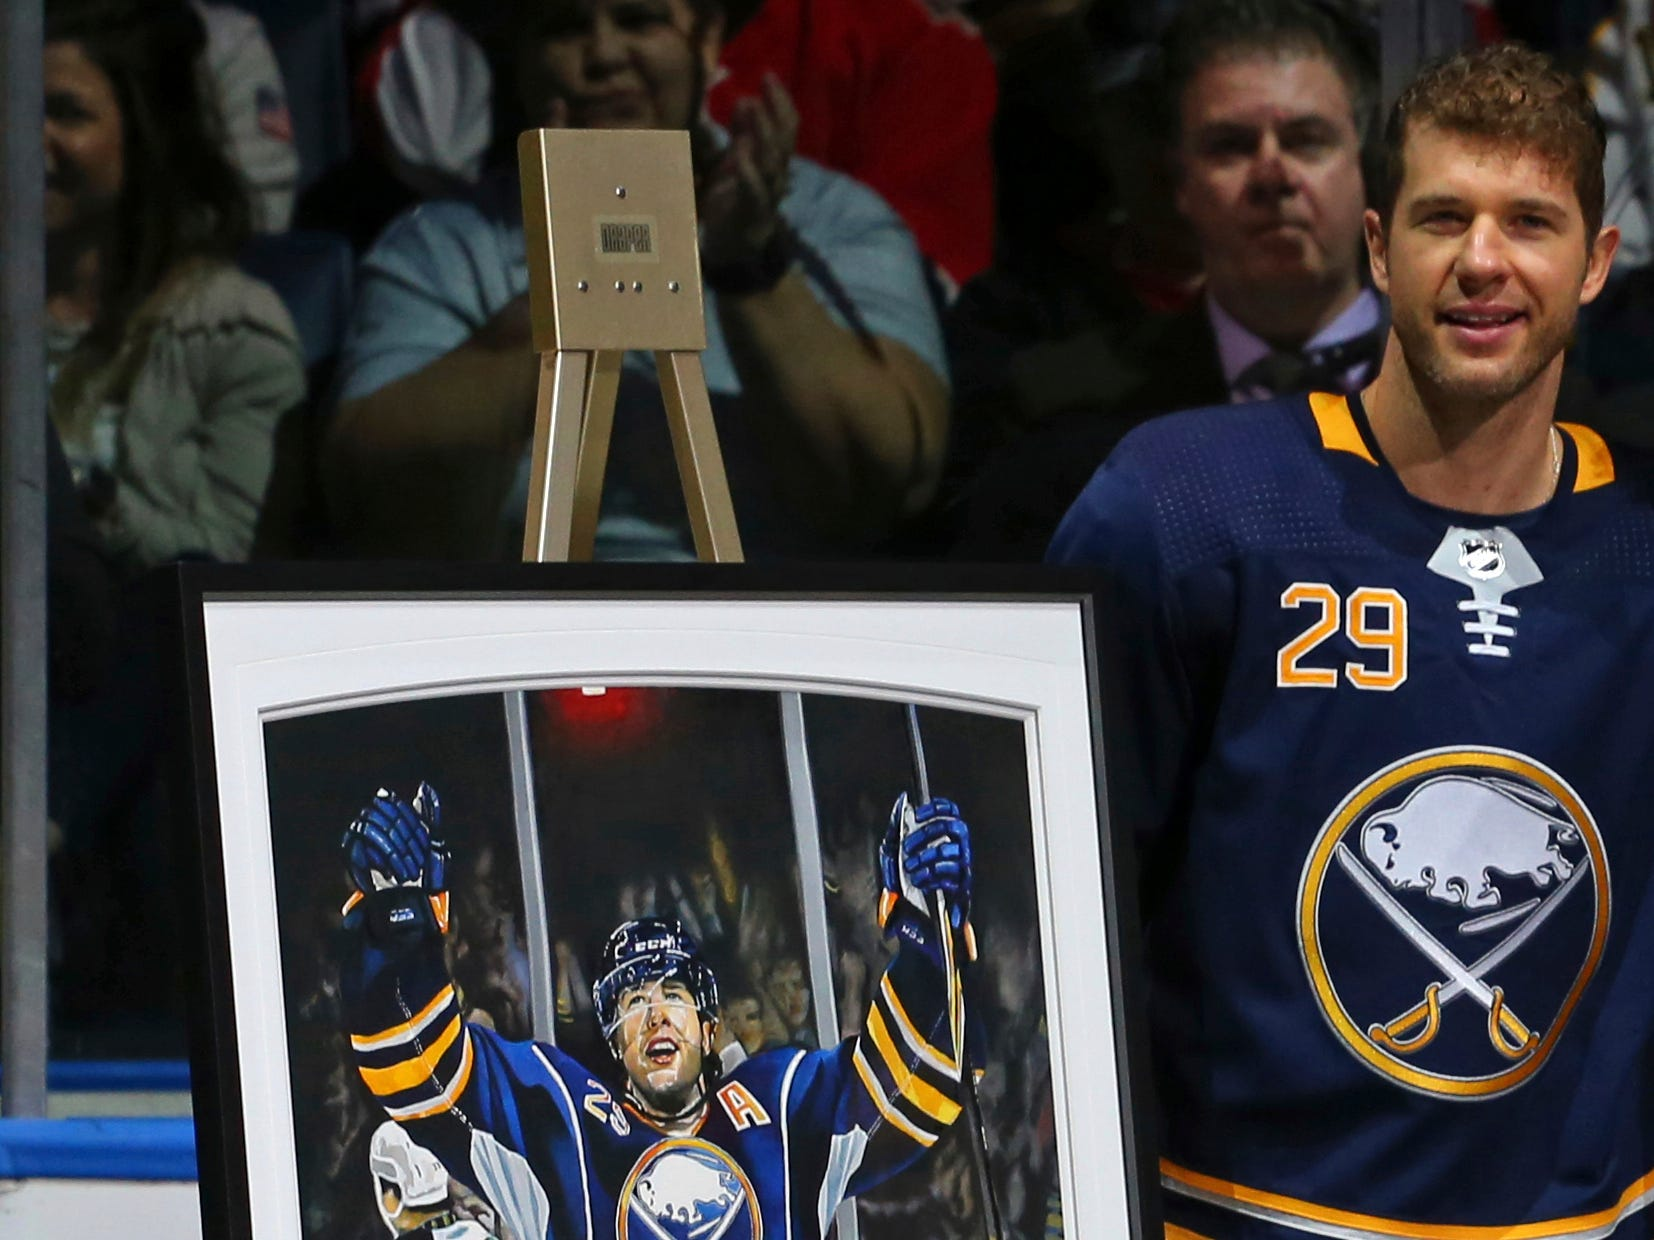 Nov. 3: Buffalo's Jason Pominville, honored before Saturday's game for playing in his 1,000th game, gets two goals and an assist in his 1,001st game, a 9-2 rout of the Senators.